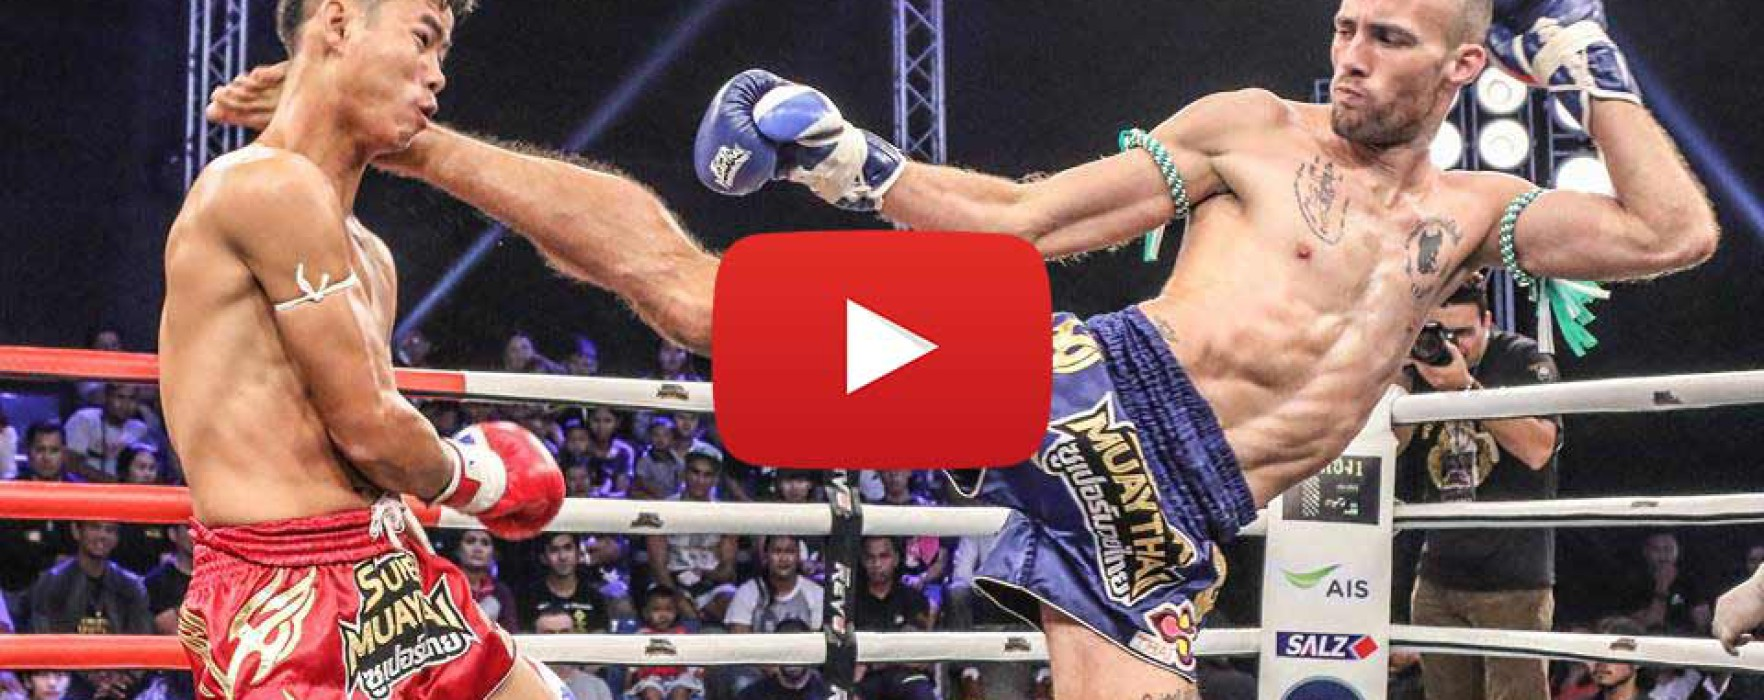 Video: Mathias e Carlos 7 Muay Thai – Super Muay Thai – 28/02/2016